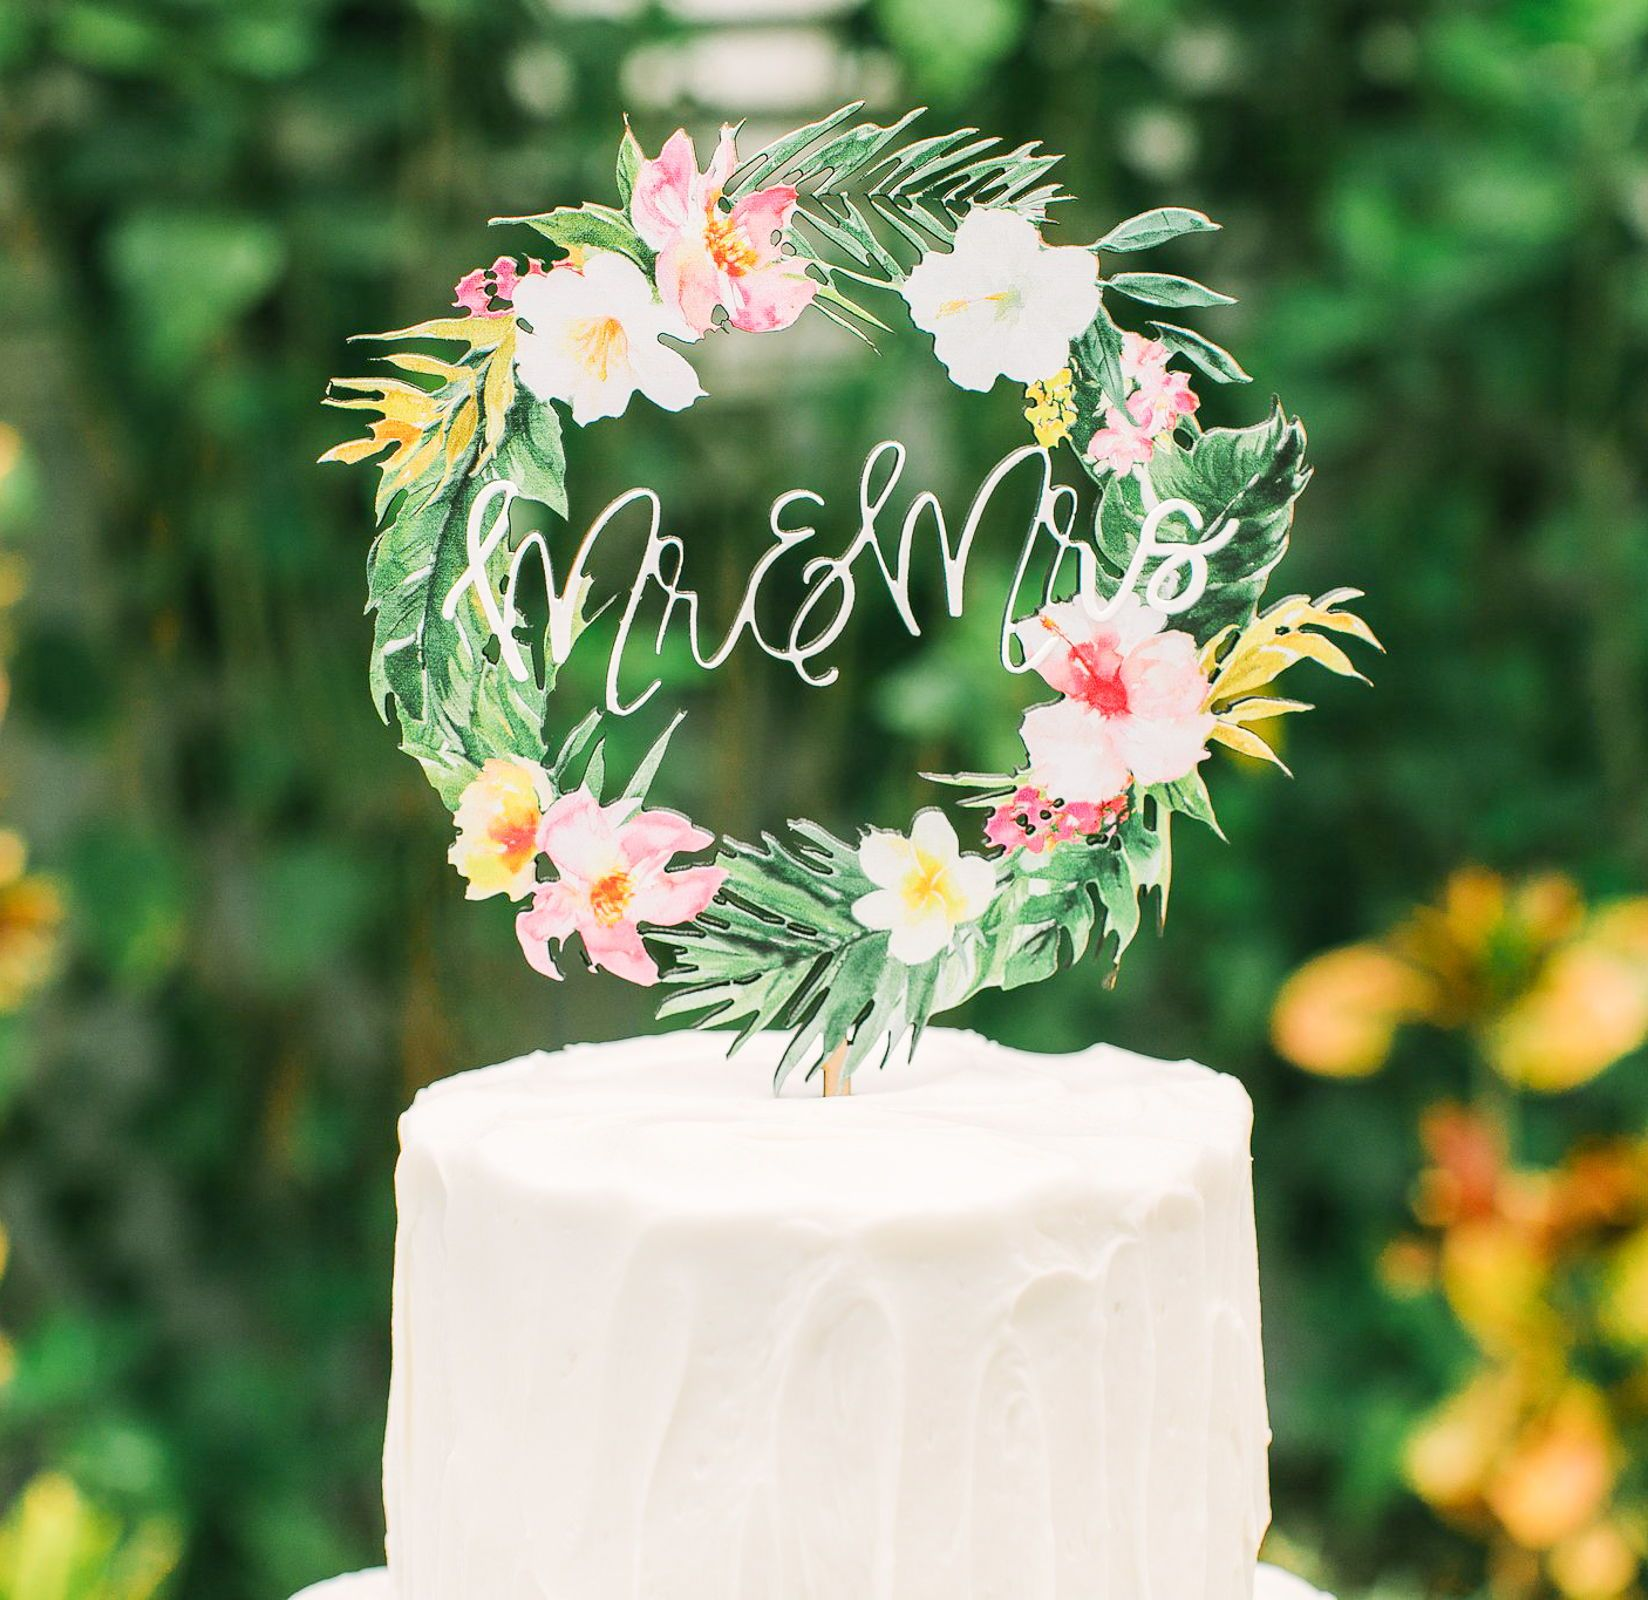 Tropical wedding cake topper floral wreath mr u mrs colorful wooden